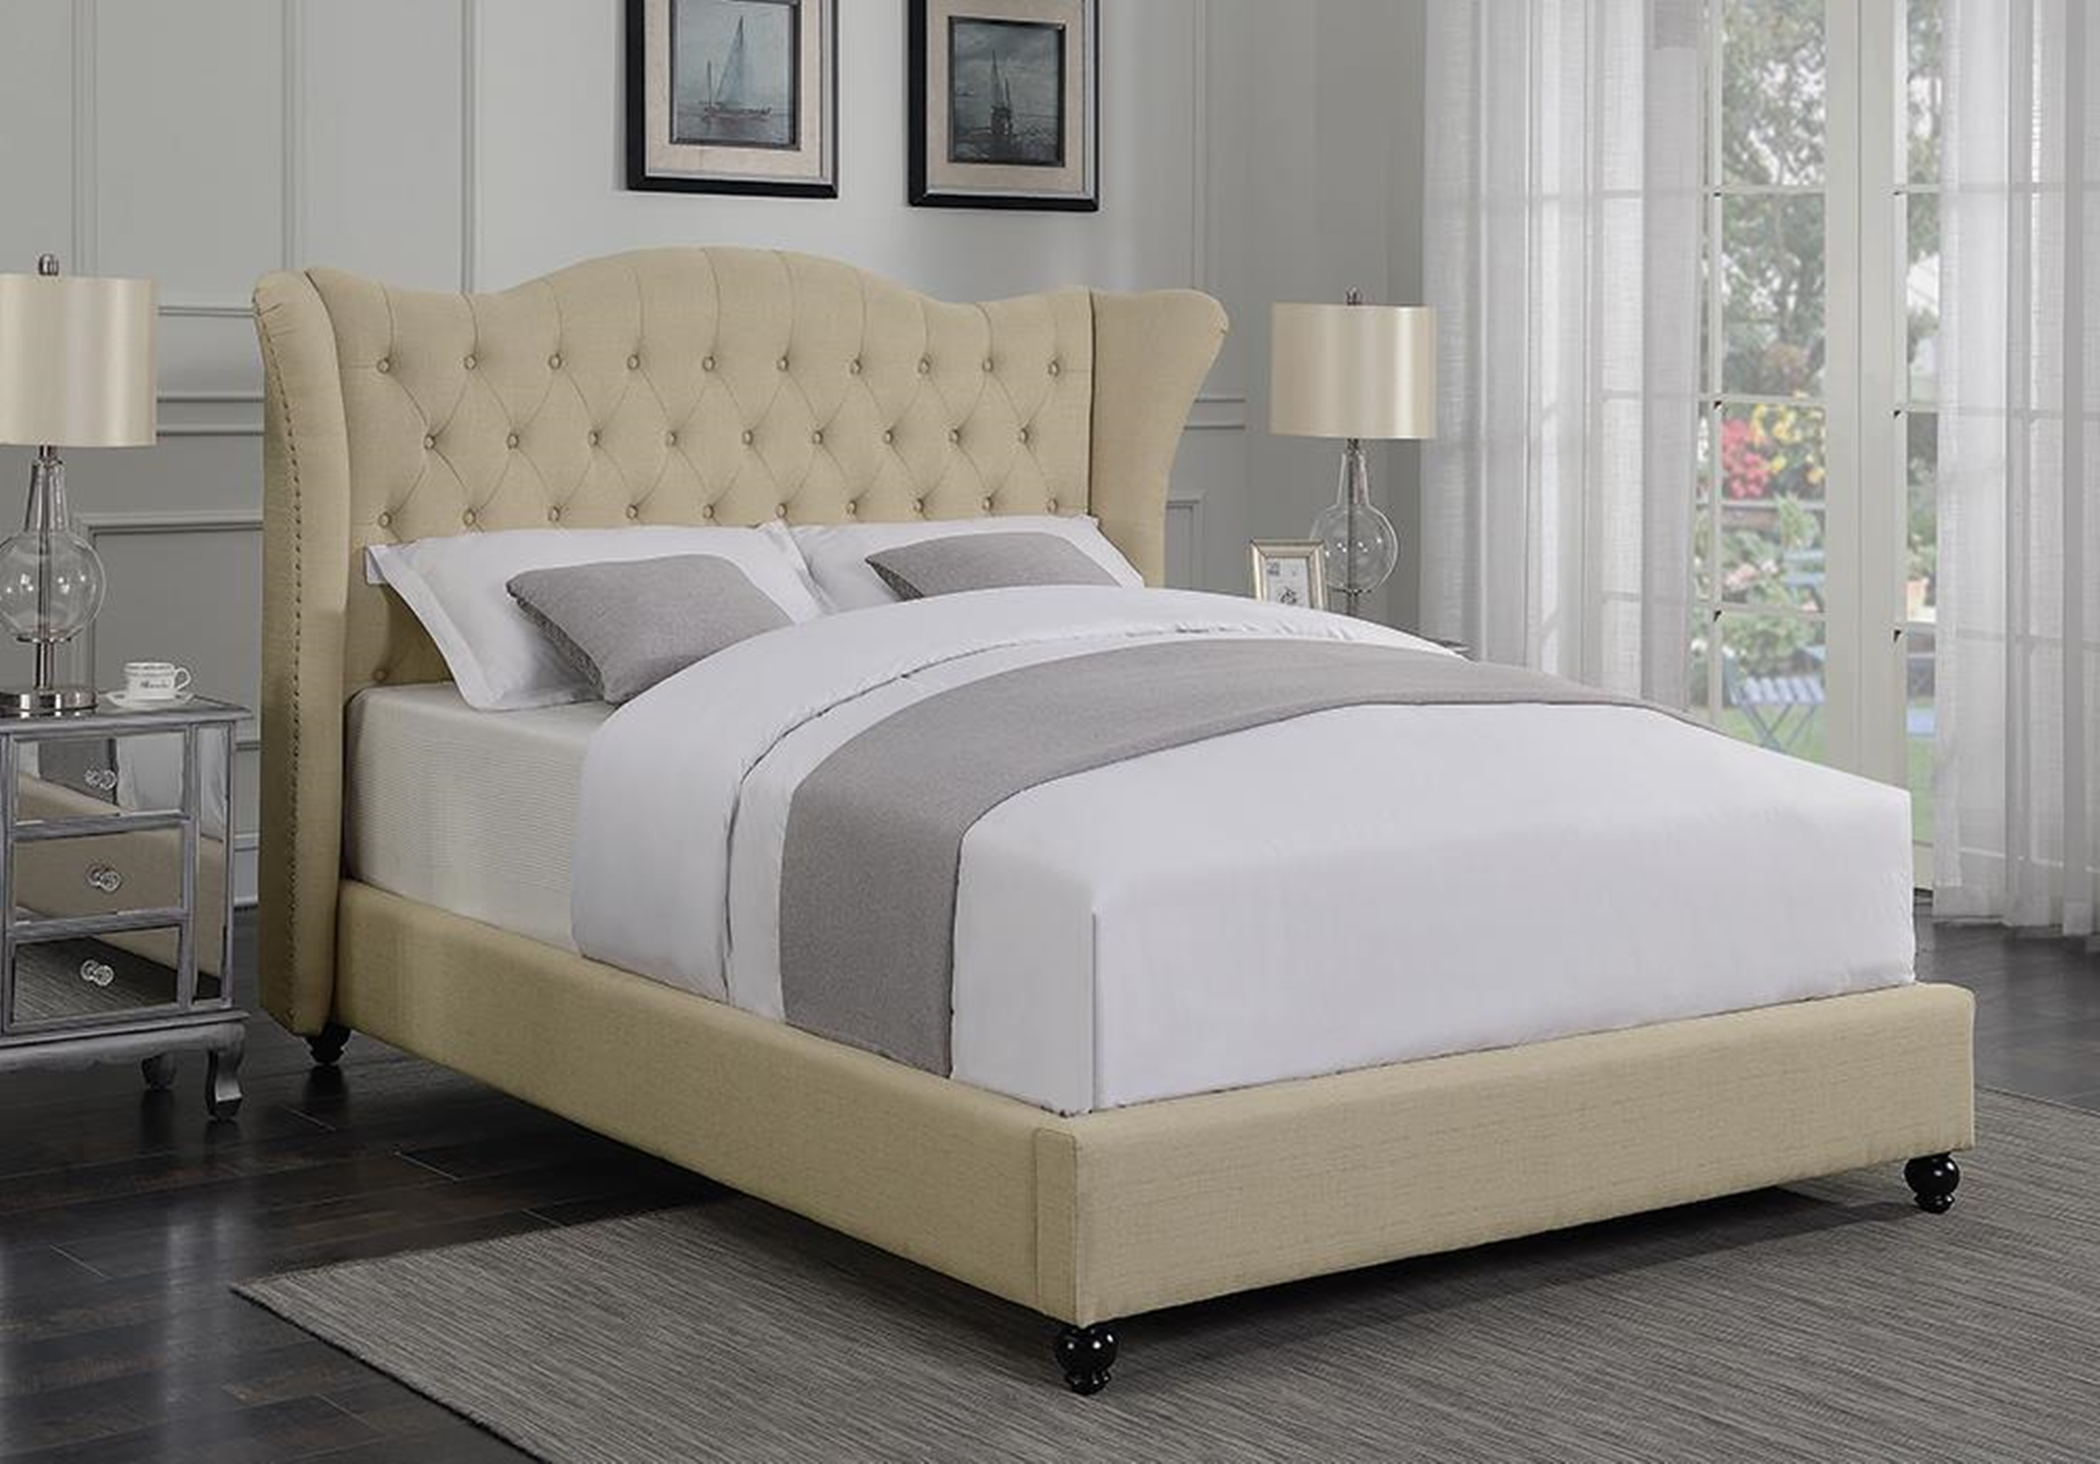 Coronado Beige Upholstered Twin Bed